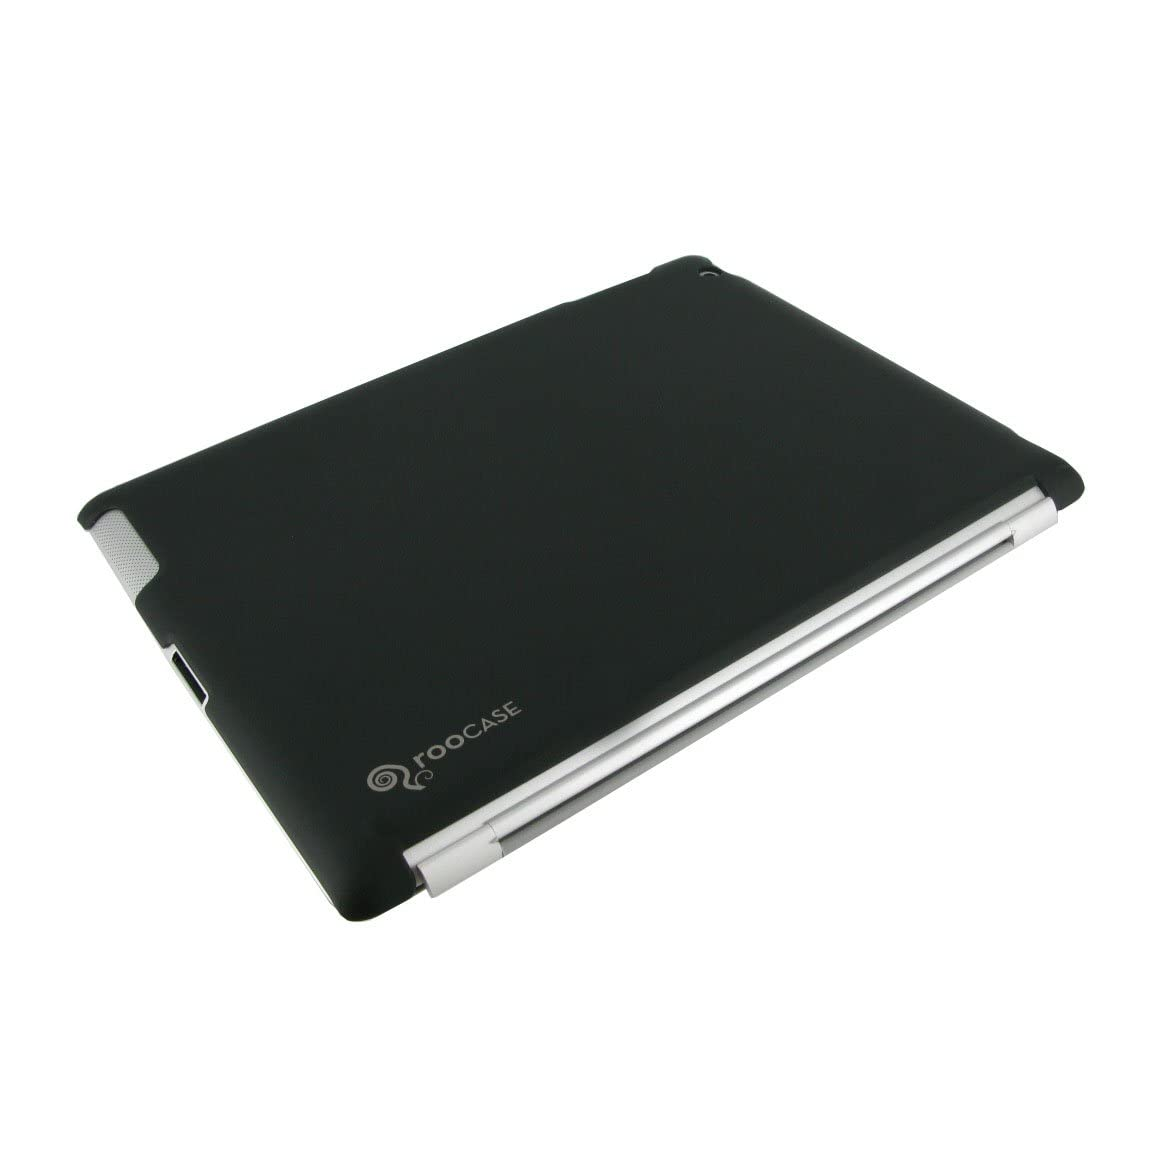 rooCASE Slim-Fit Companion Case for iPad 2 - Black